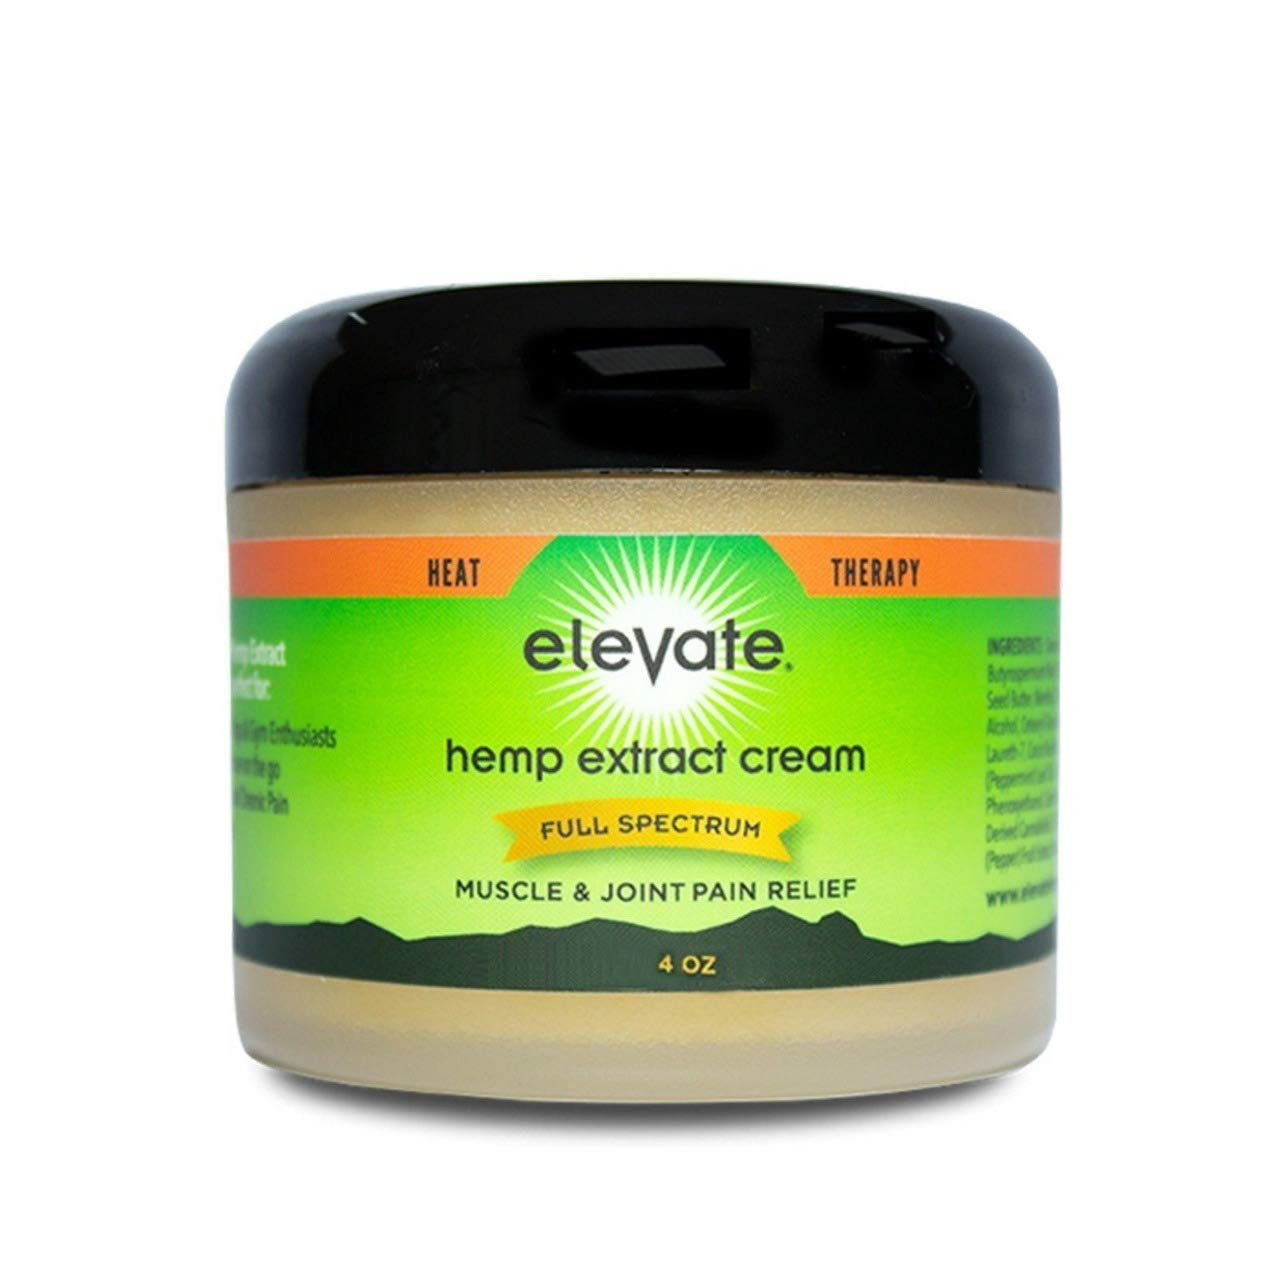 Pain Relief Hemp Extract Heat Cream Therapy, Muscle & Joint Relief by Elevate